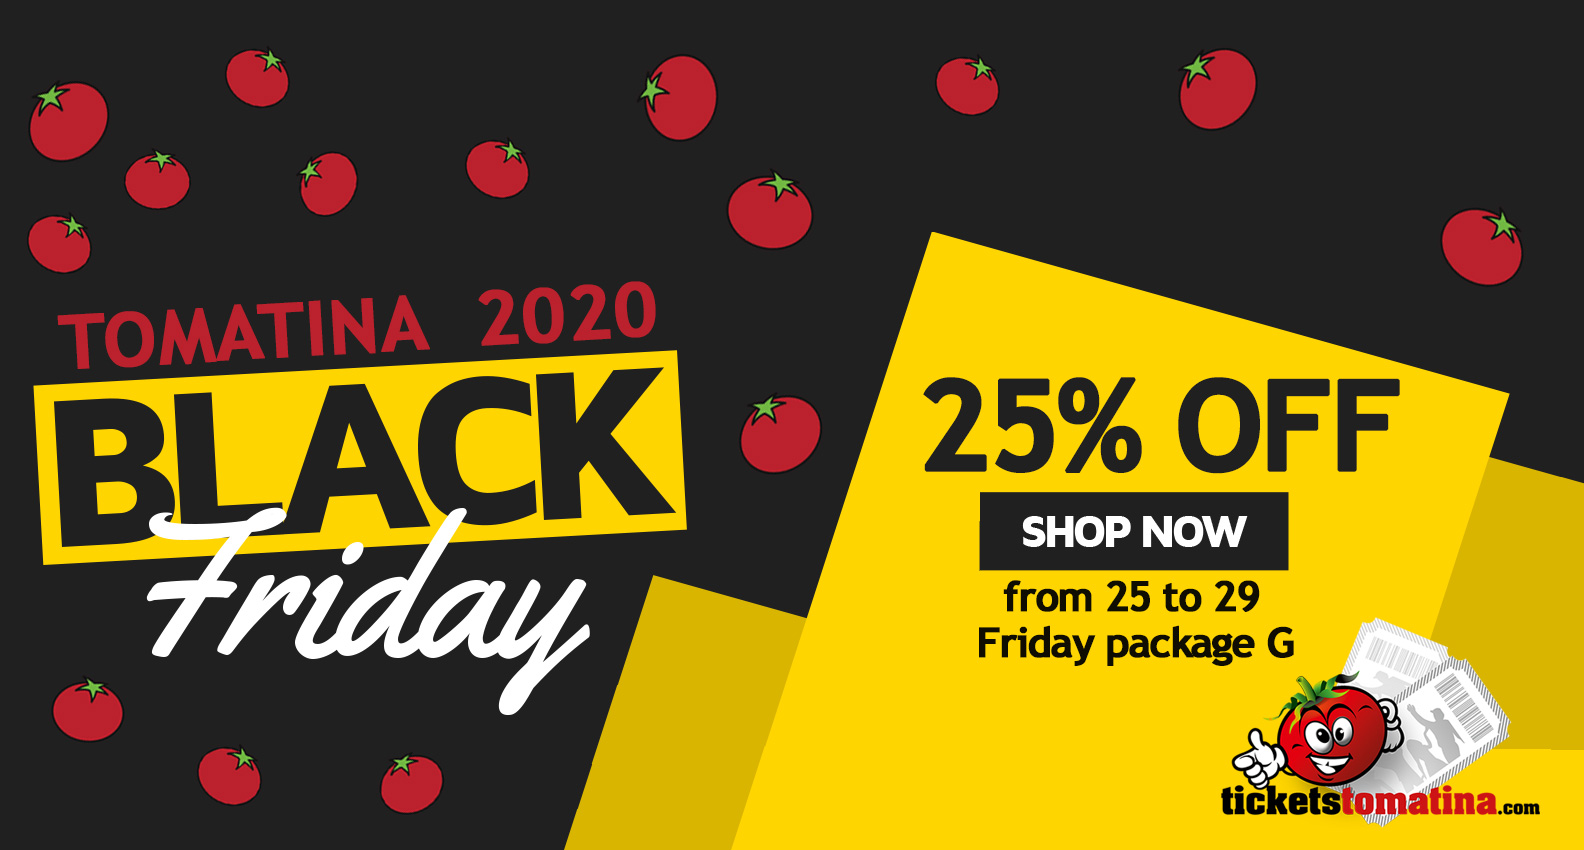 ticket-tomatina-2020-black-friday-bus.jpg